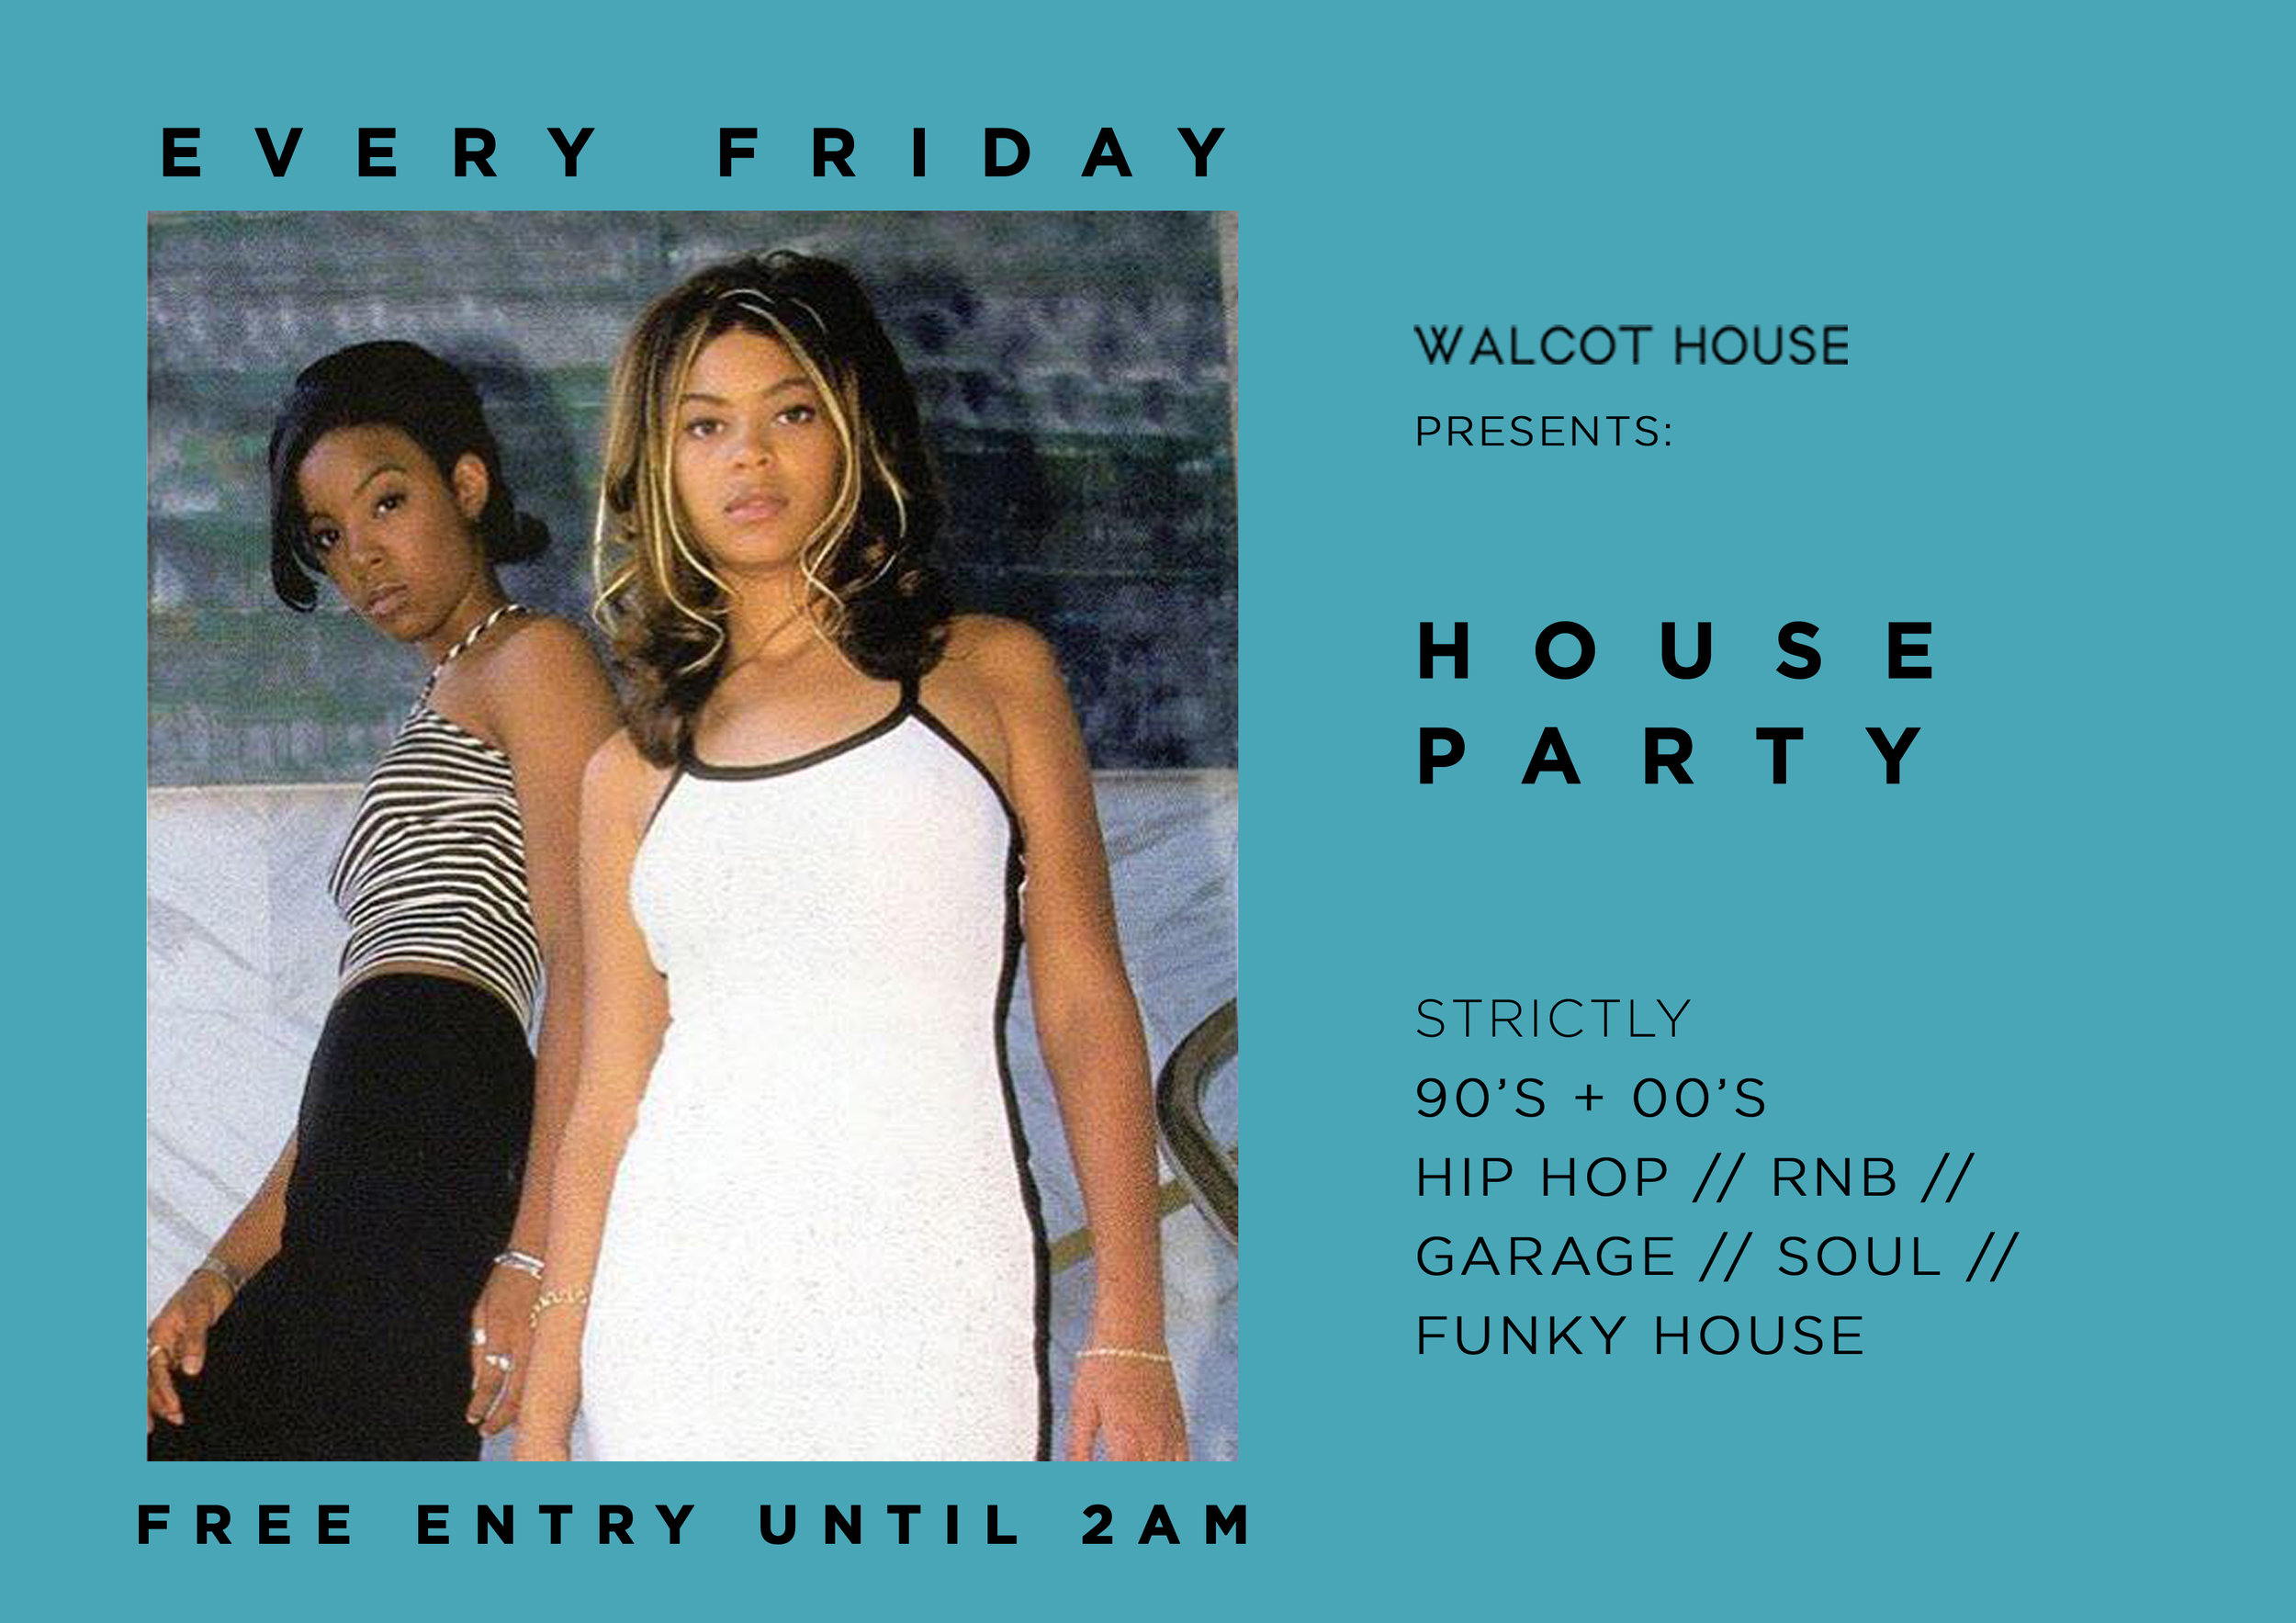 HOUSE PARTY FLYER destiny.jpg